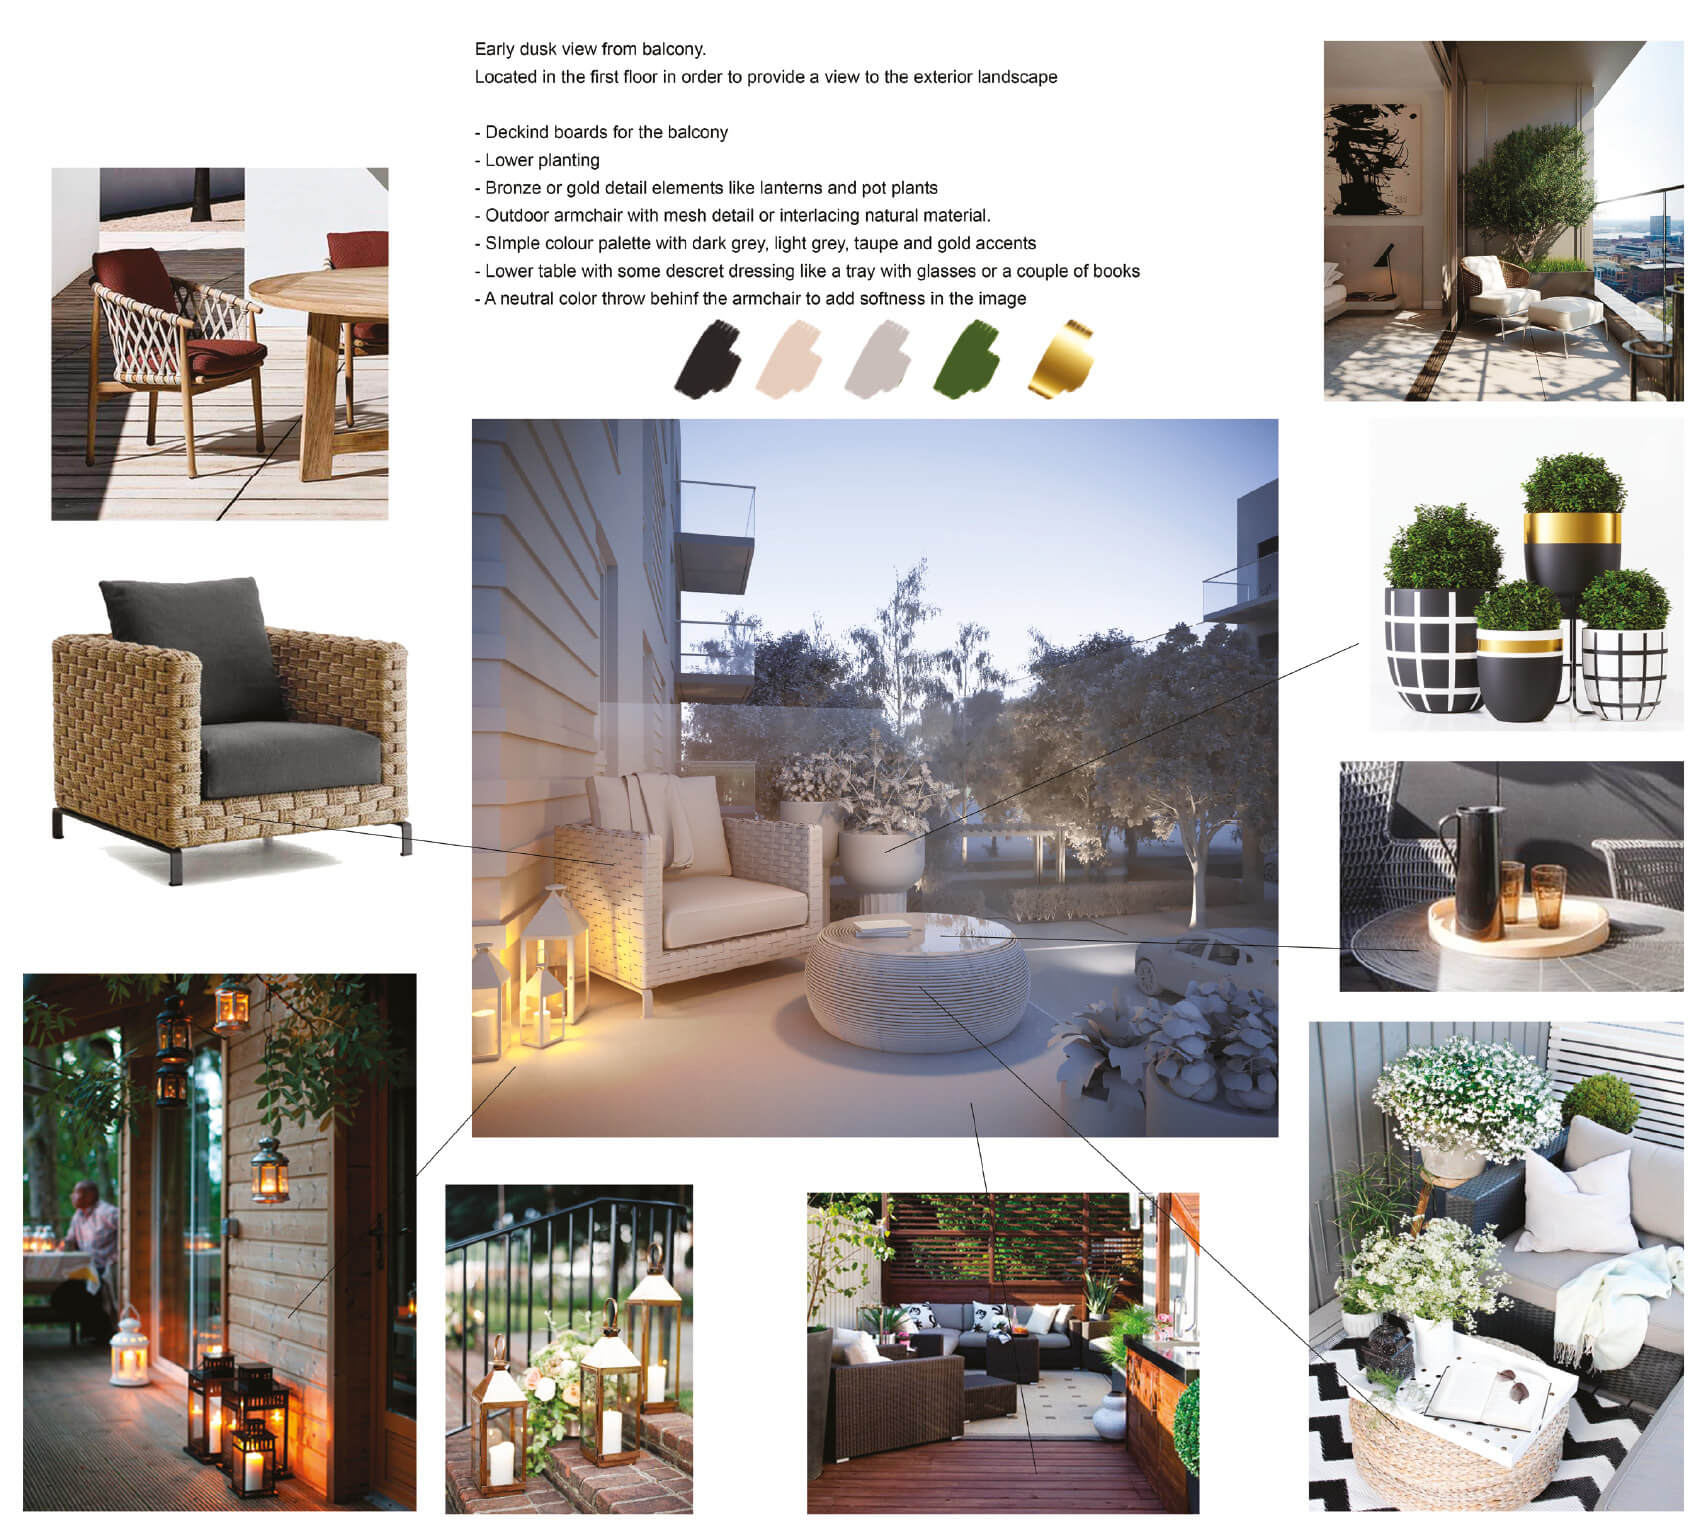 Interior design and visualisation for The Berkeley Group 02